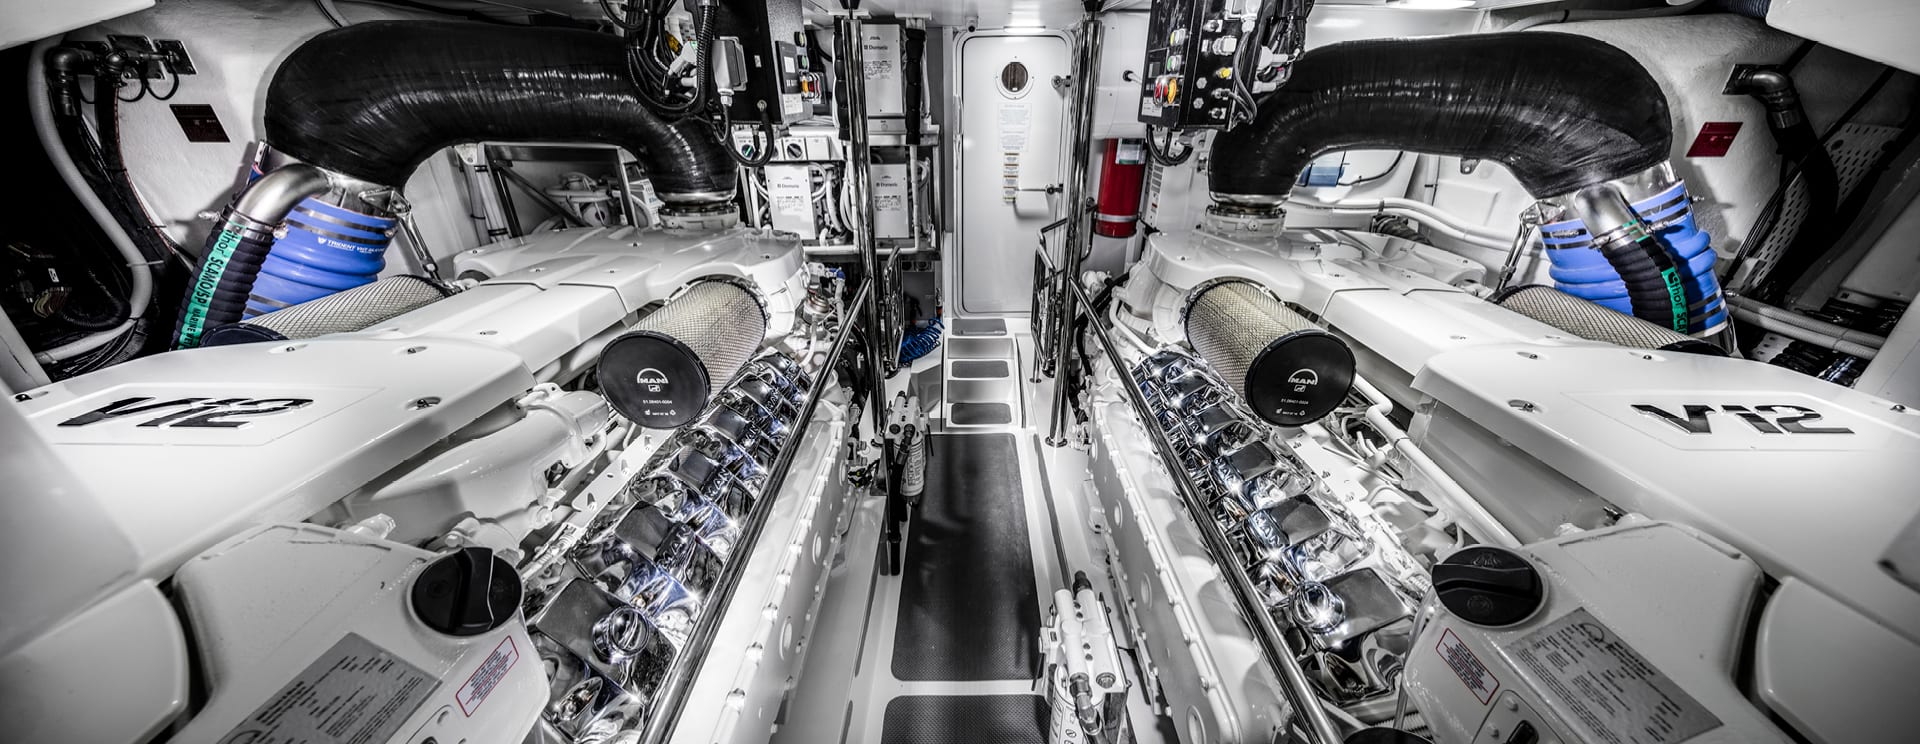 Riviera 72 Sports Motor Yacht Engine room